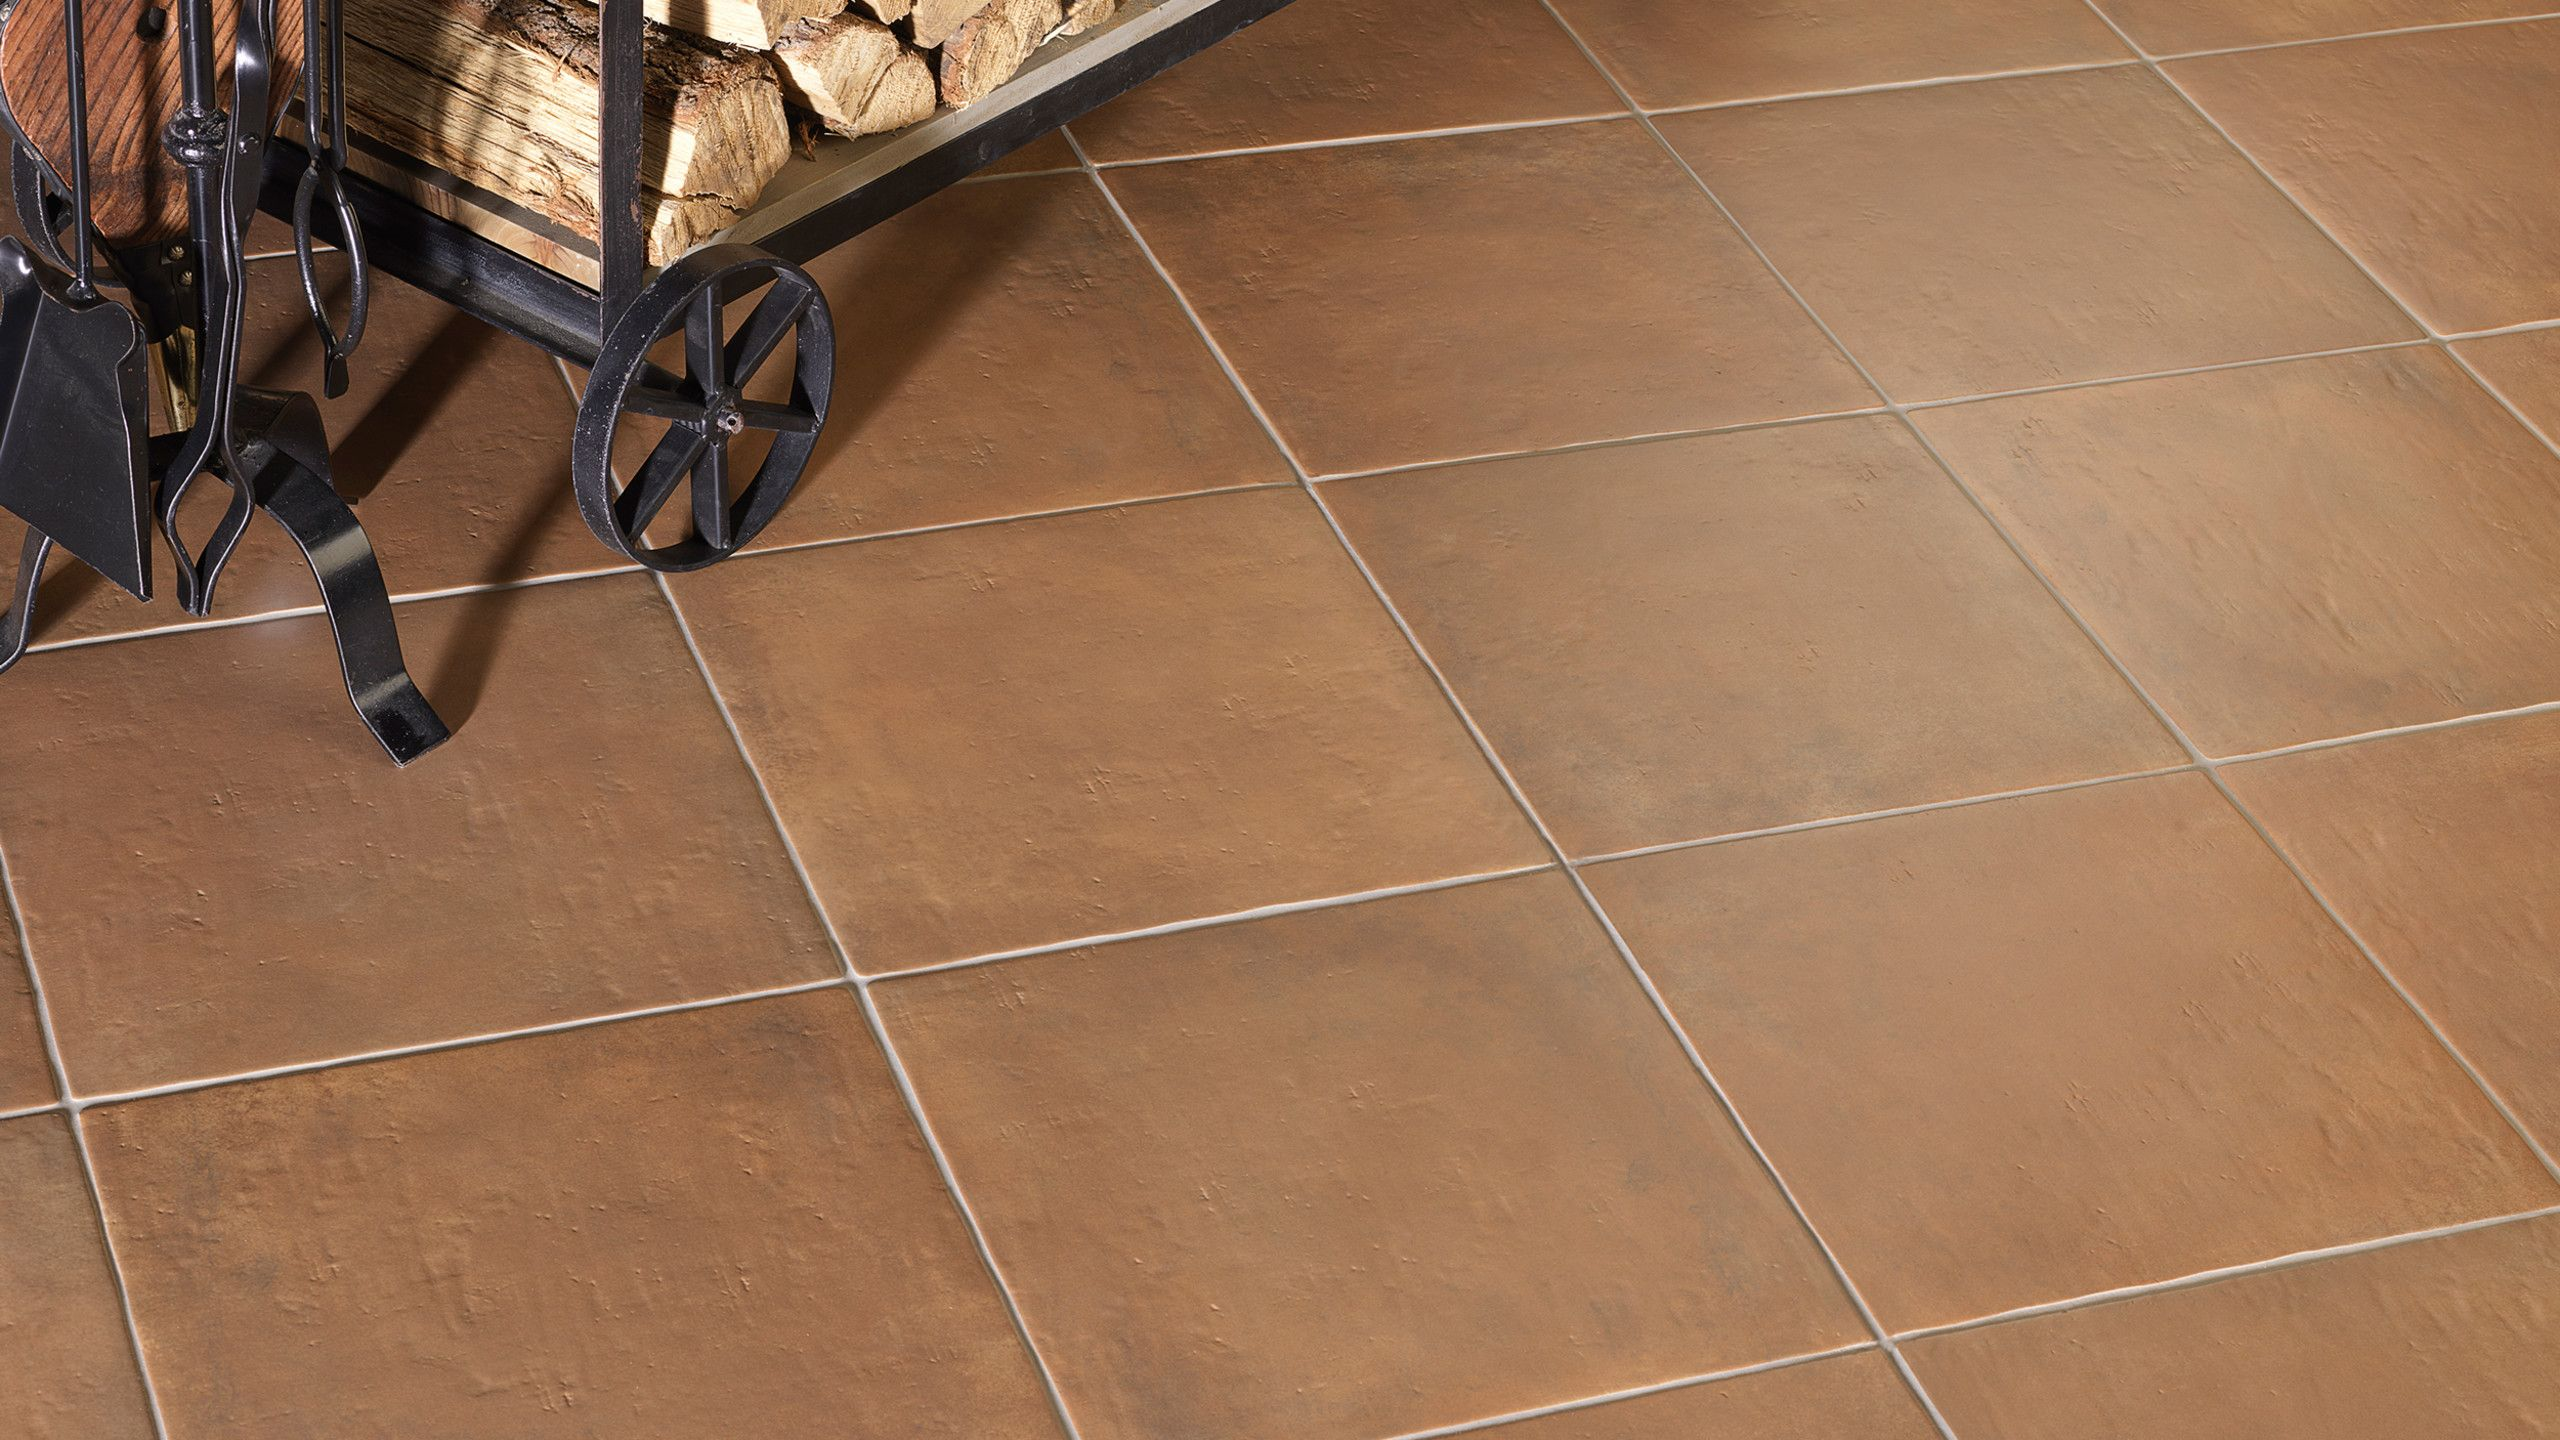 Cotto Nature 14 X 14 Floor Wall Tile In Siena Flooring Wall Tiles Floor And Wall Tile